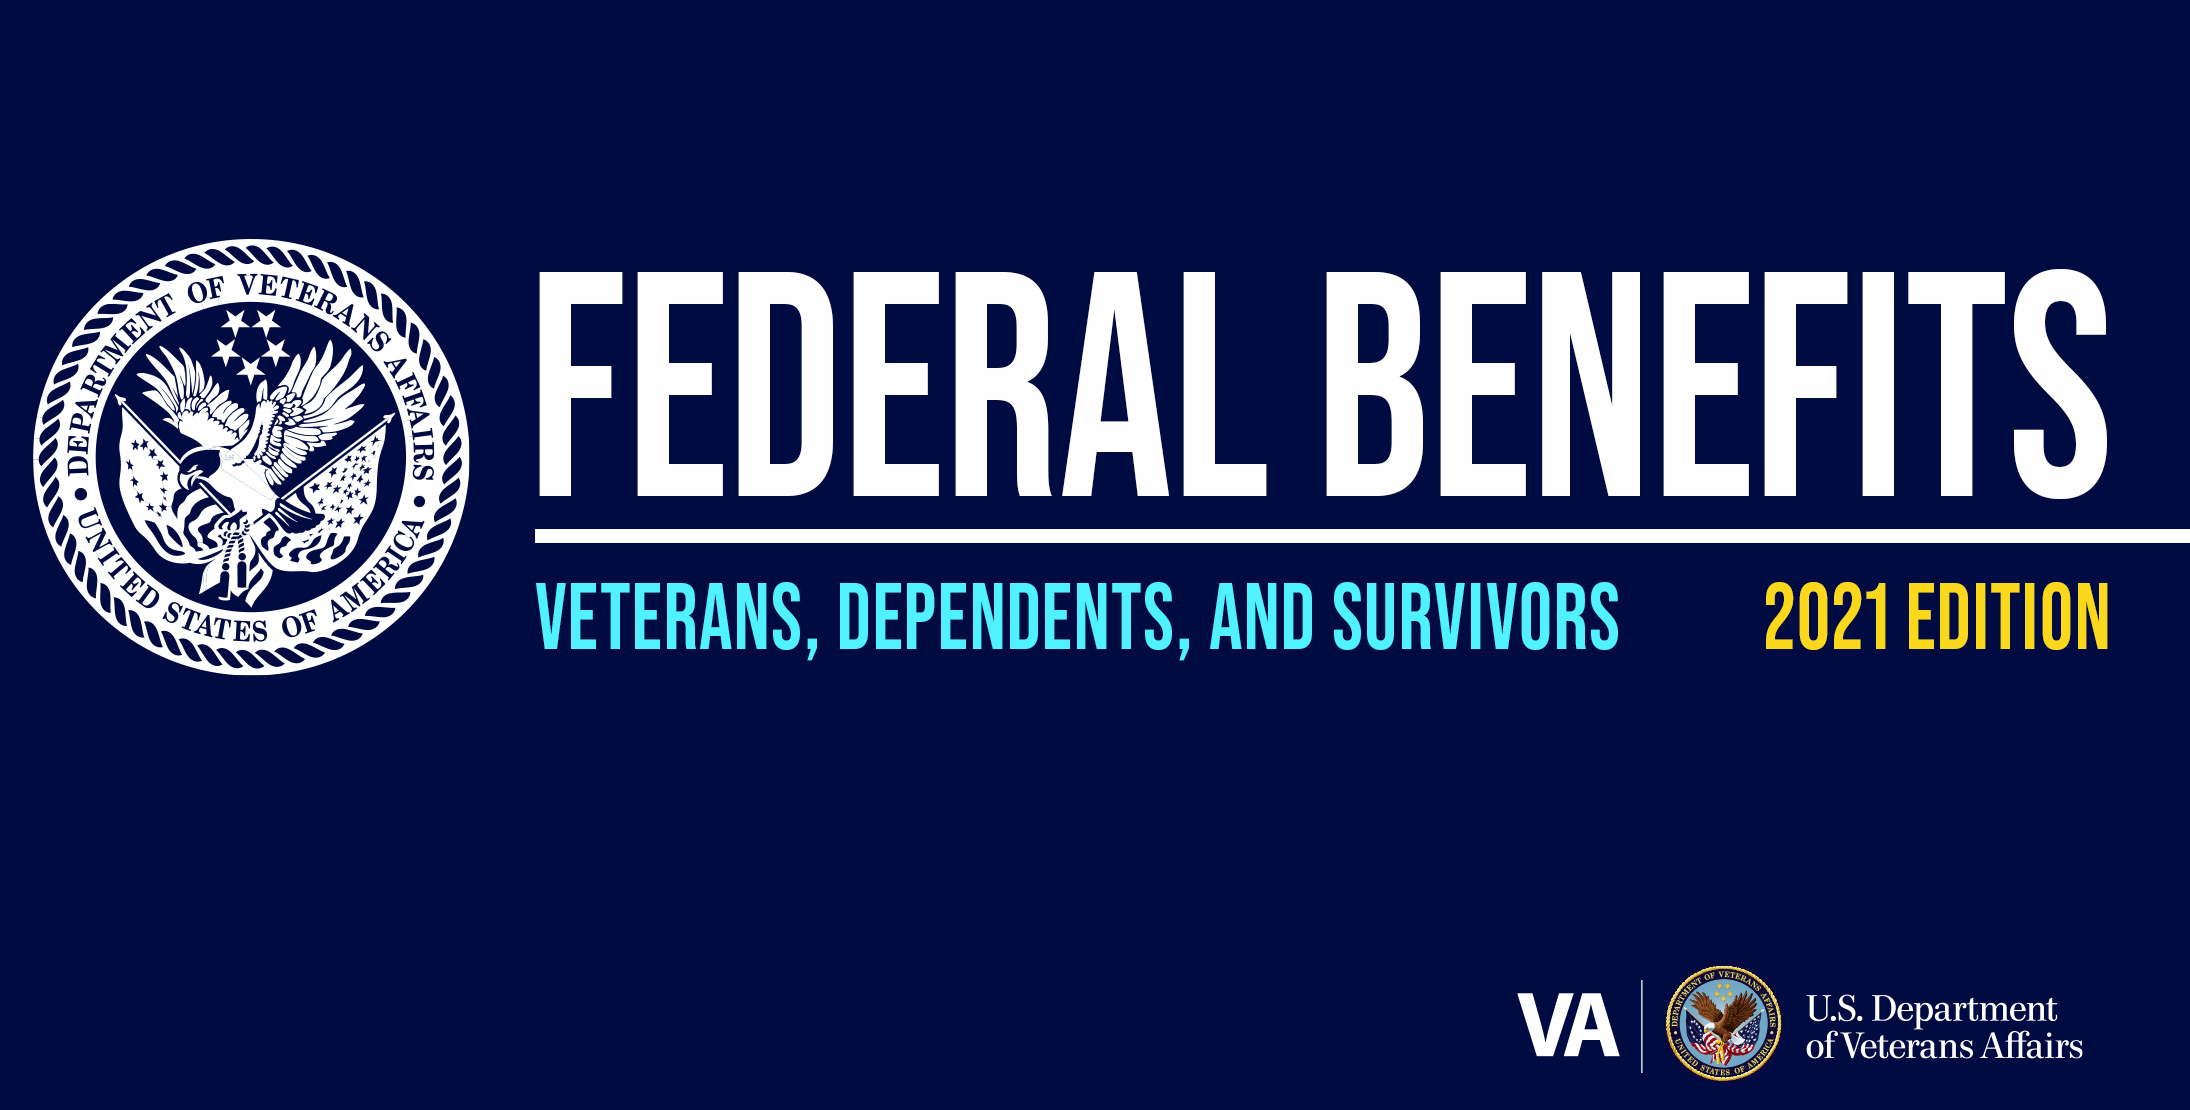 Veteran and family member can access to benefits and services at www.va.gov/getstarted and through two handbooks on the page.